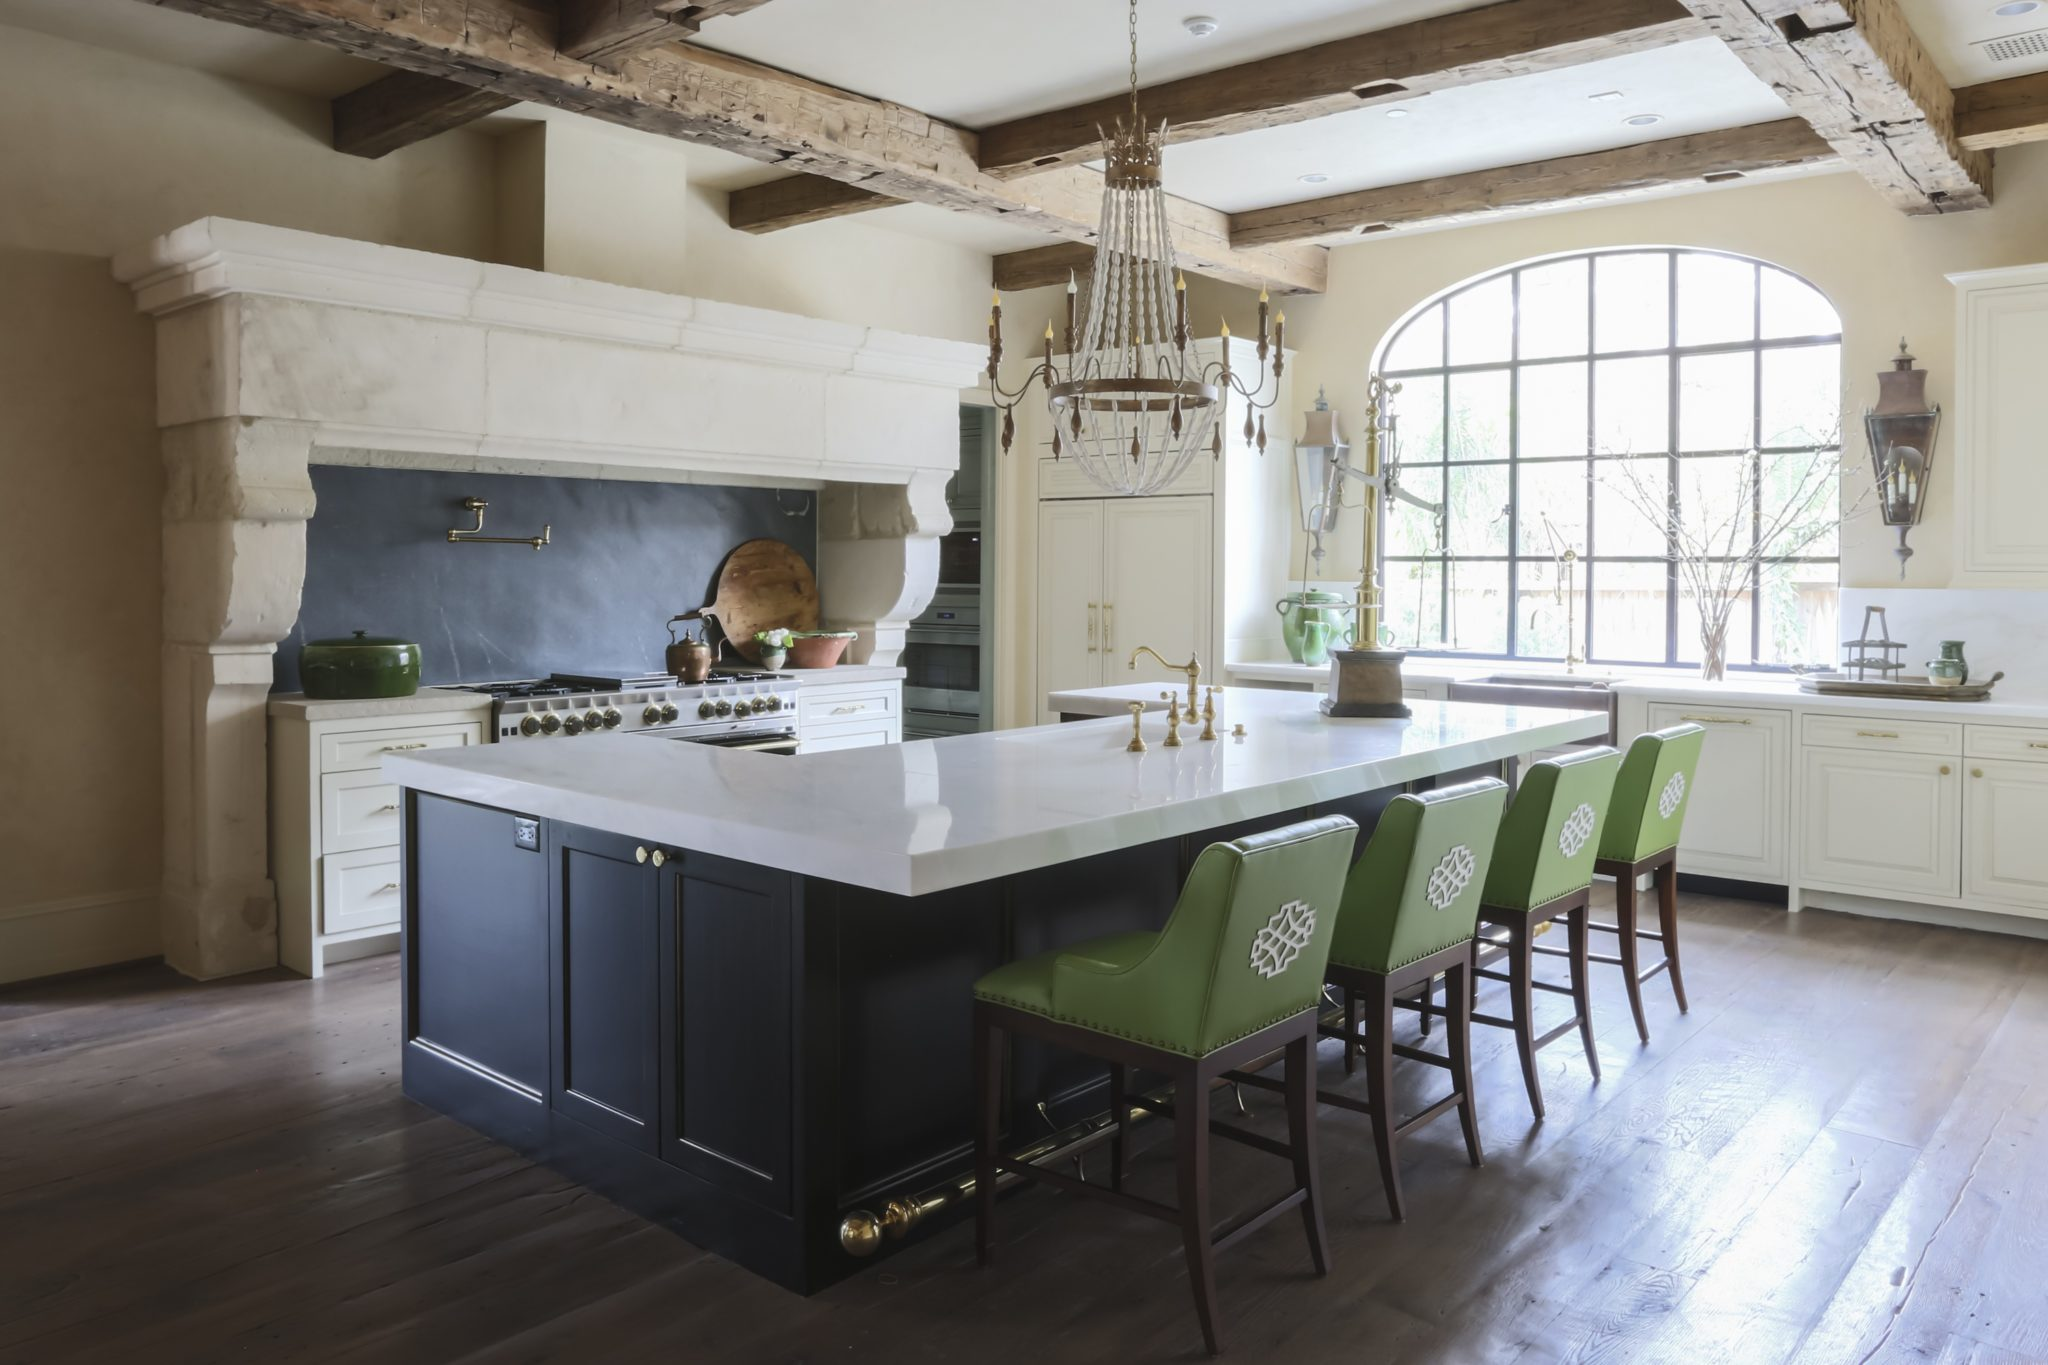 French transitional kitchen - steel windows, reclaimed beams andbright green twist by Triangle Interiors